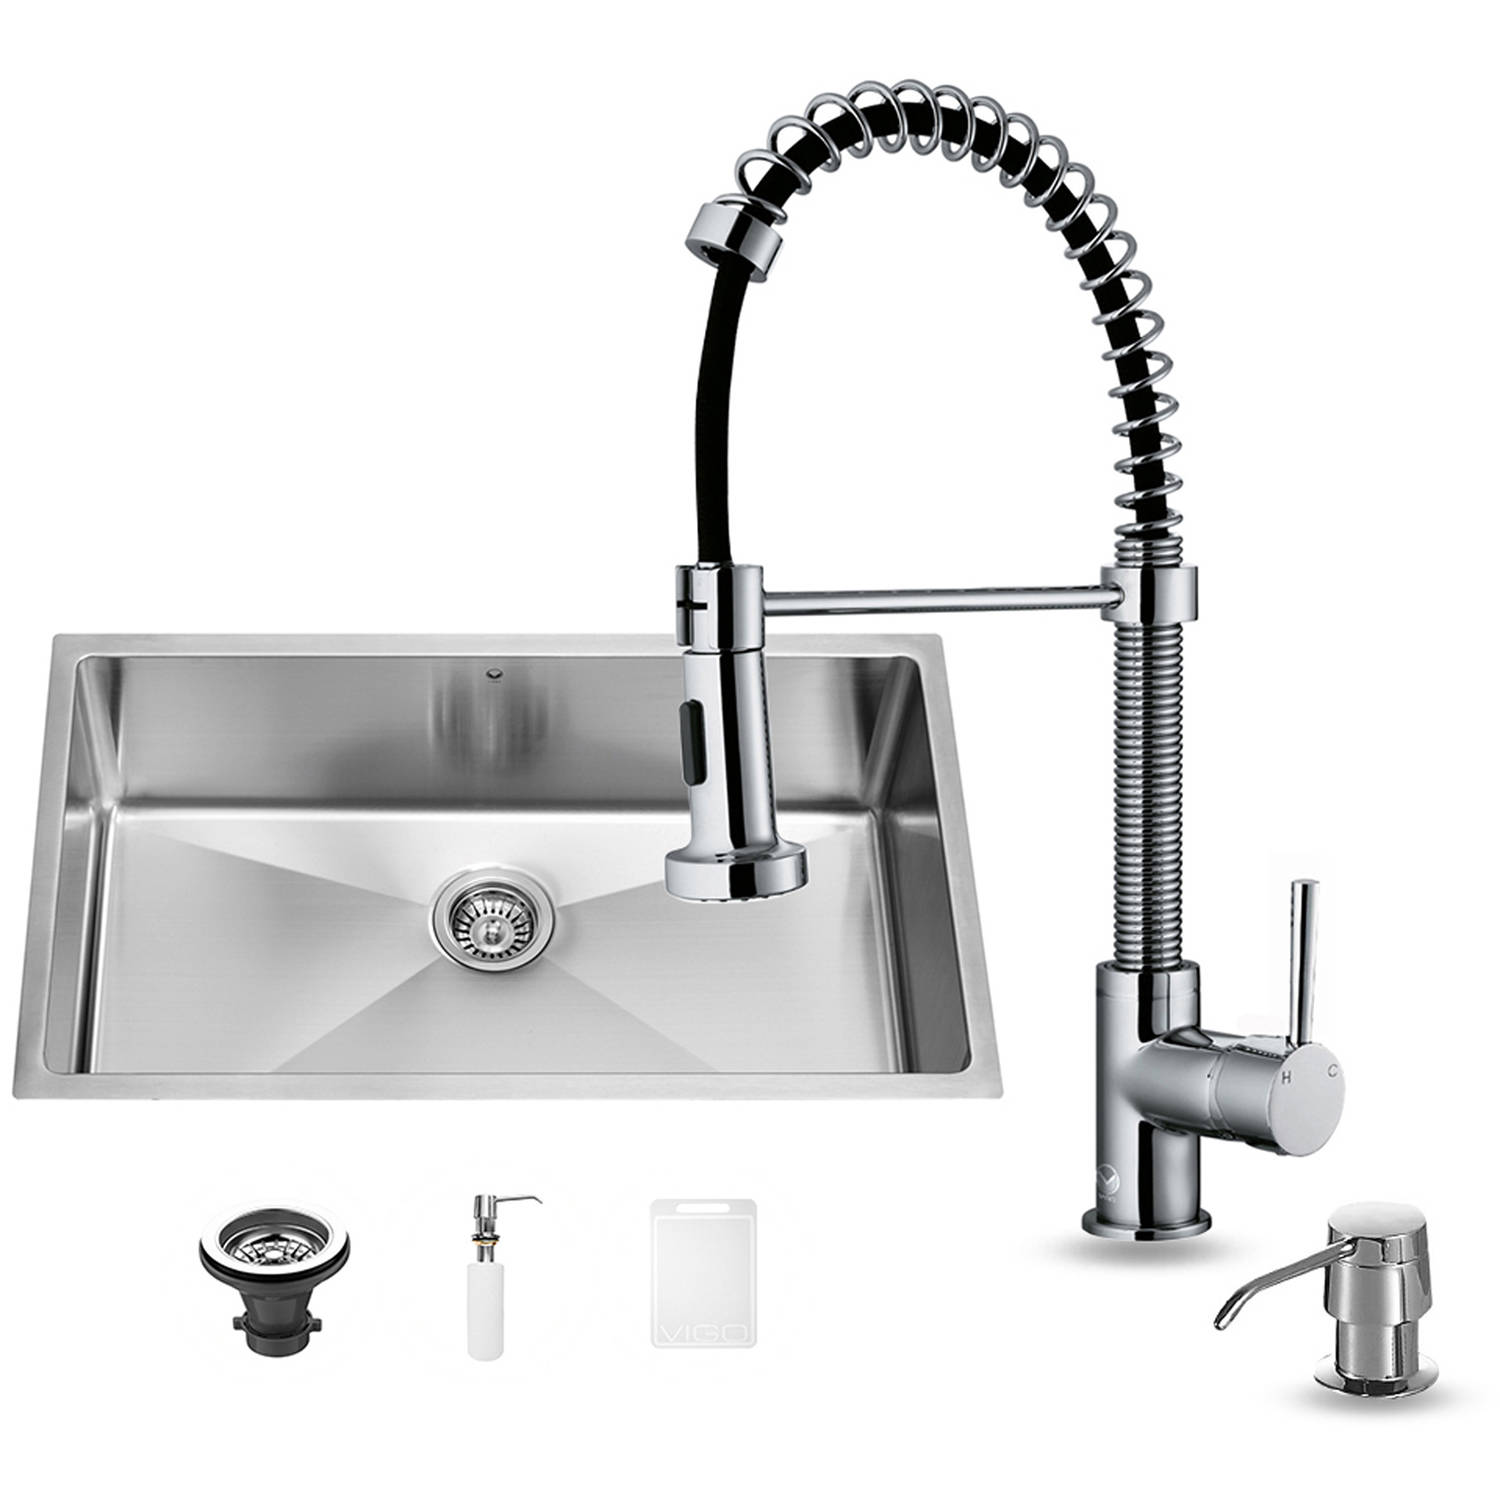 "VIGO All-In-One 32"" Mercer Stainless Steel Undermount Kitchen Sink Set With Edison Faucet In Chrome, Grid, Strainer And Dispenser"